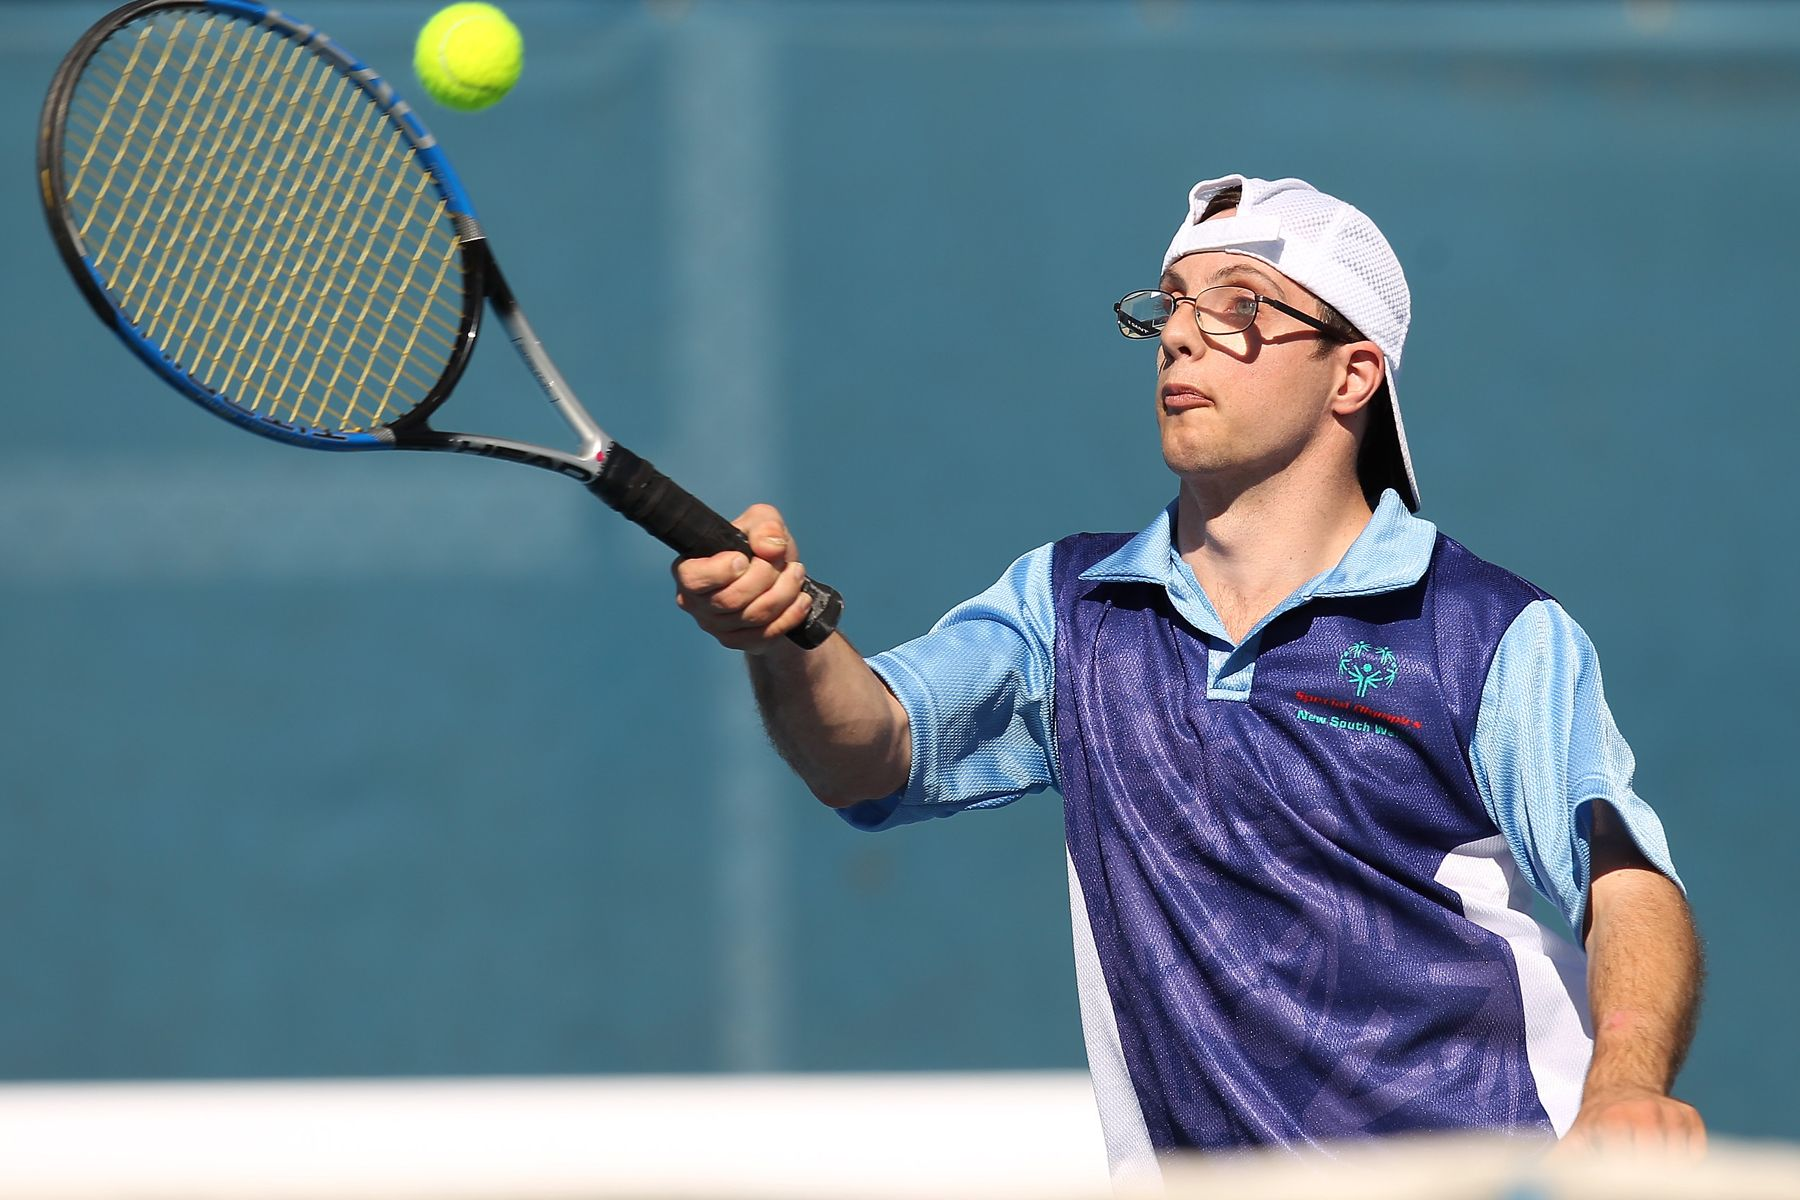 Special Olympics National Games Melbourne 2014 Tennis